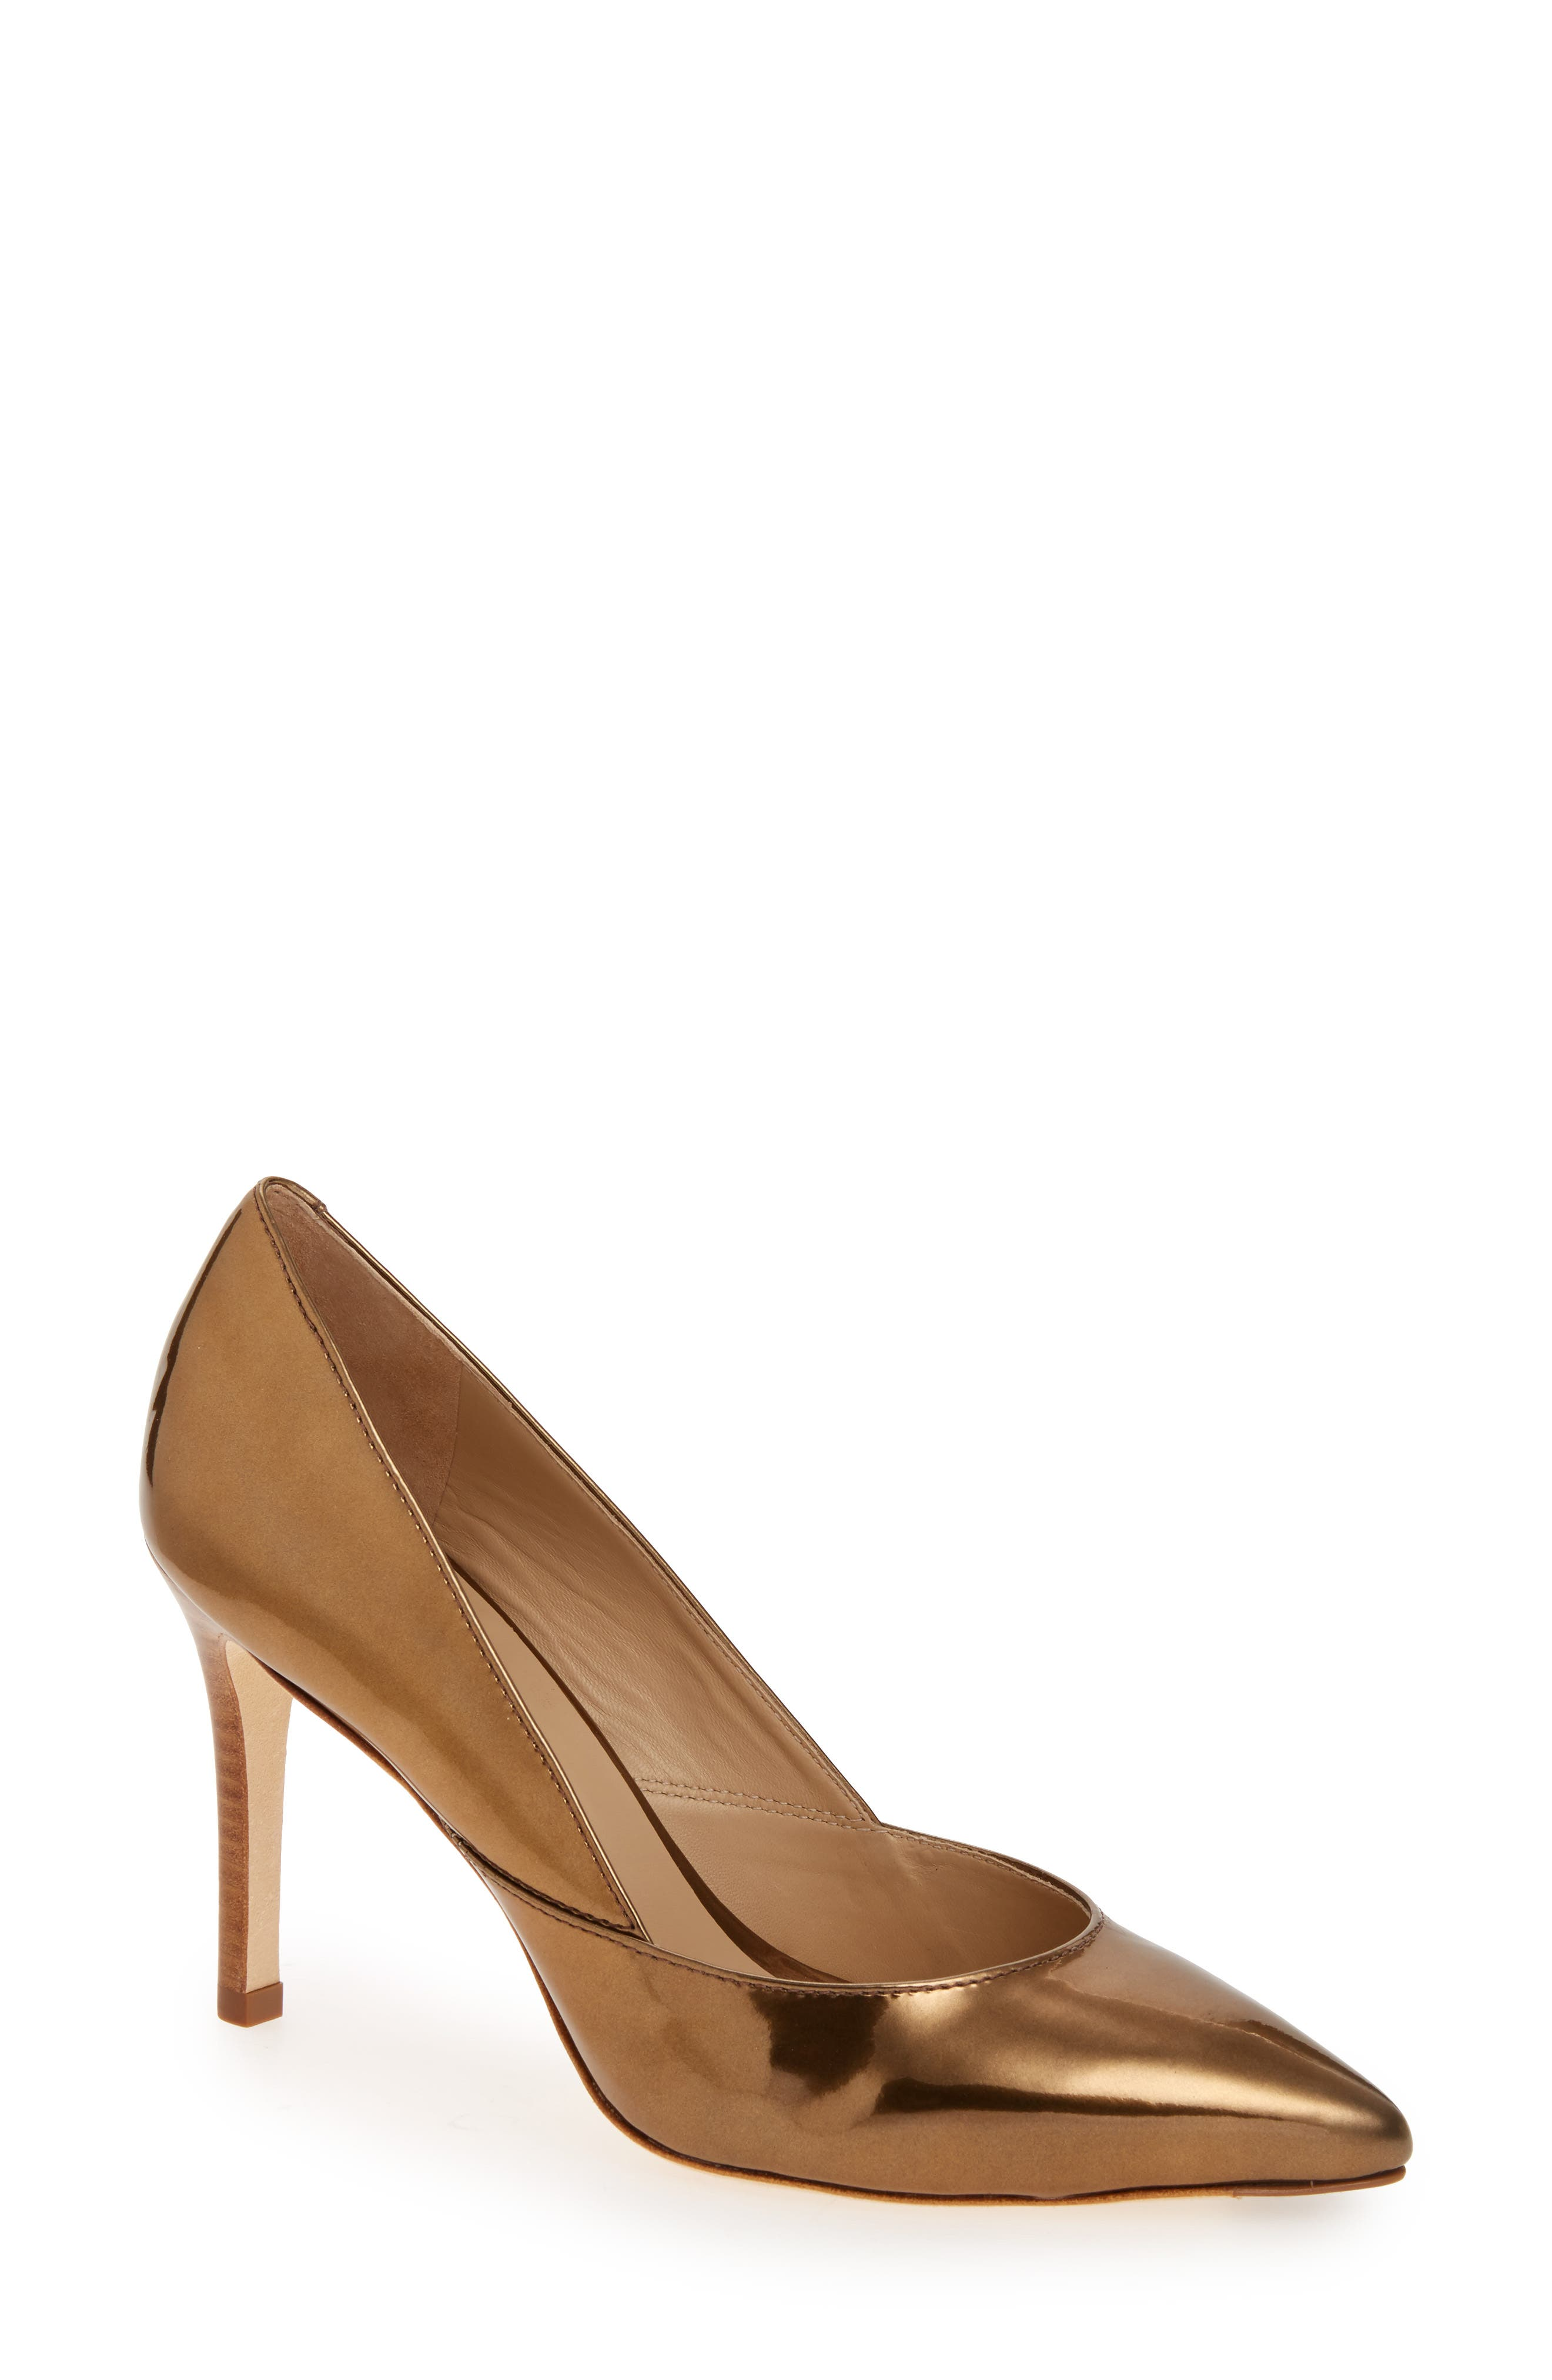 'Vanessa' Pointy Toe Leather Pump,                             Main thumbnail 7, color,